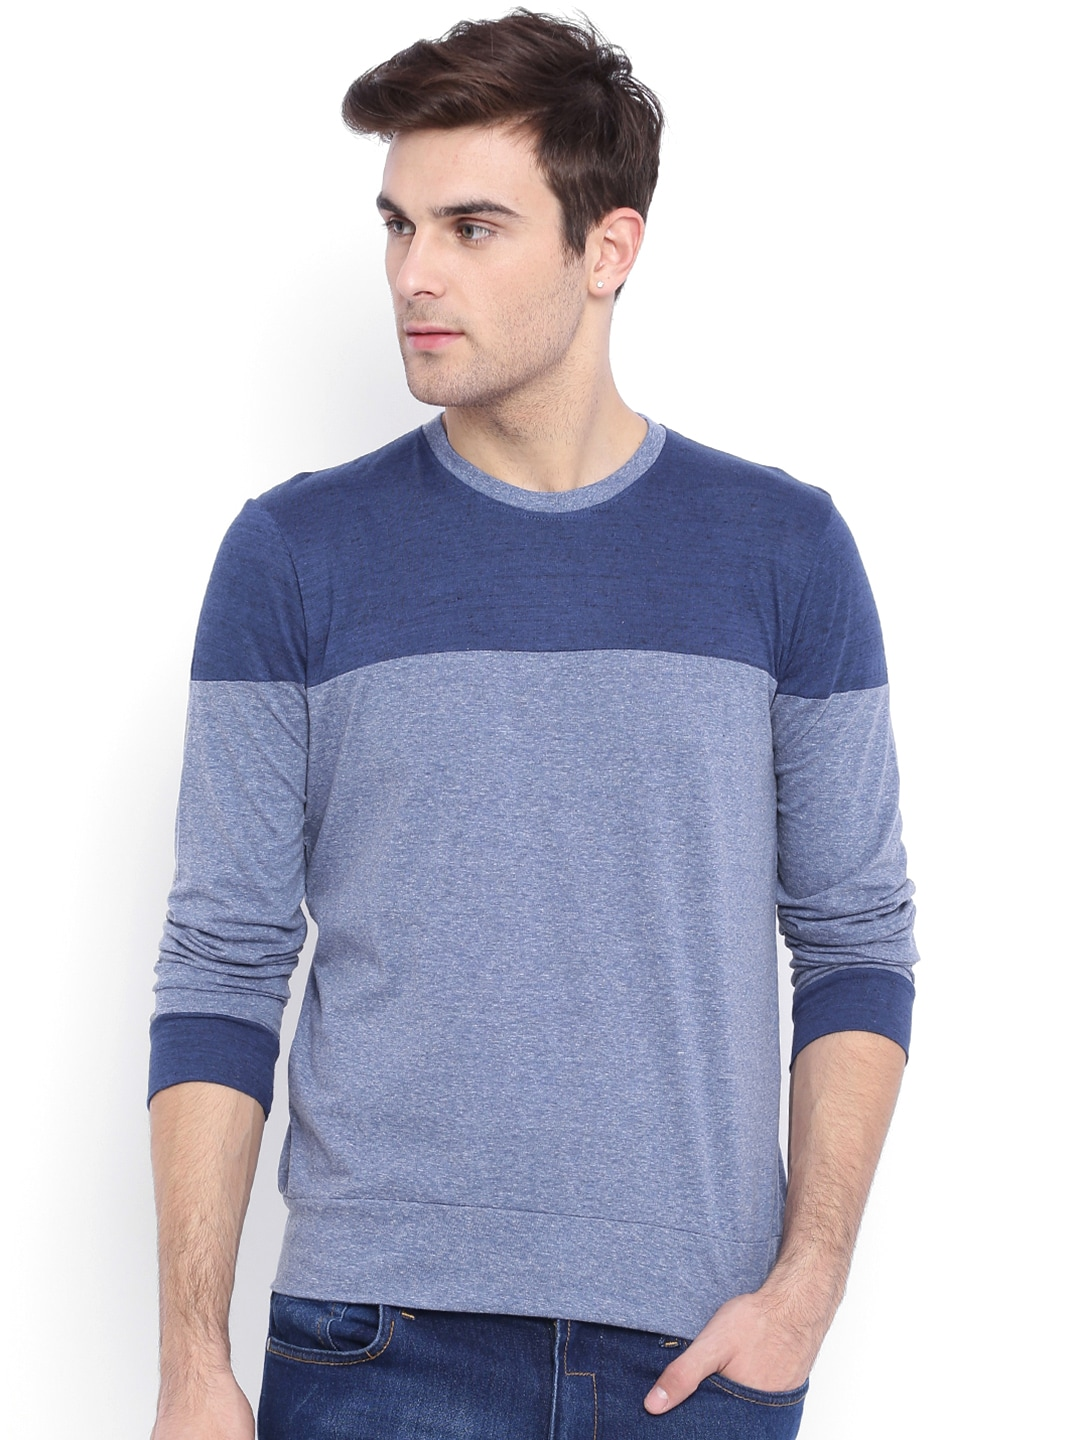 Polo T-Shirts for Men - Buy Polo T-Shirts for Men on Myntra